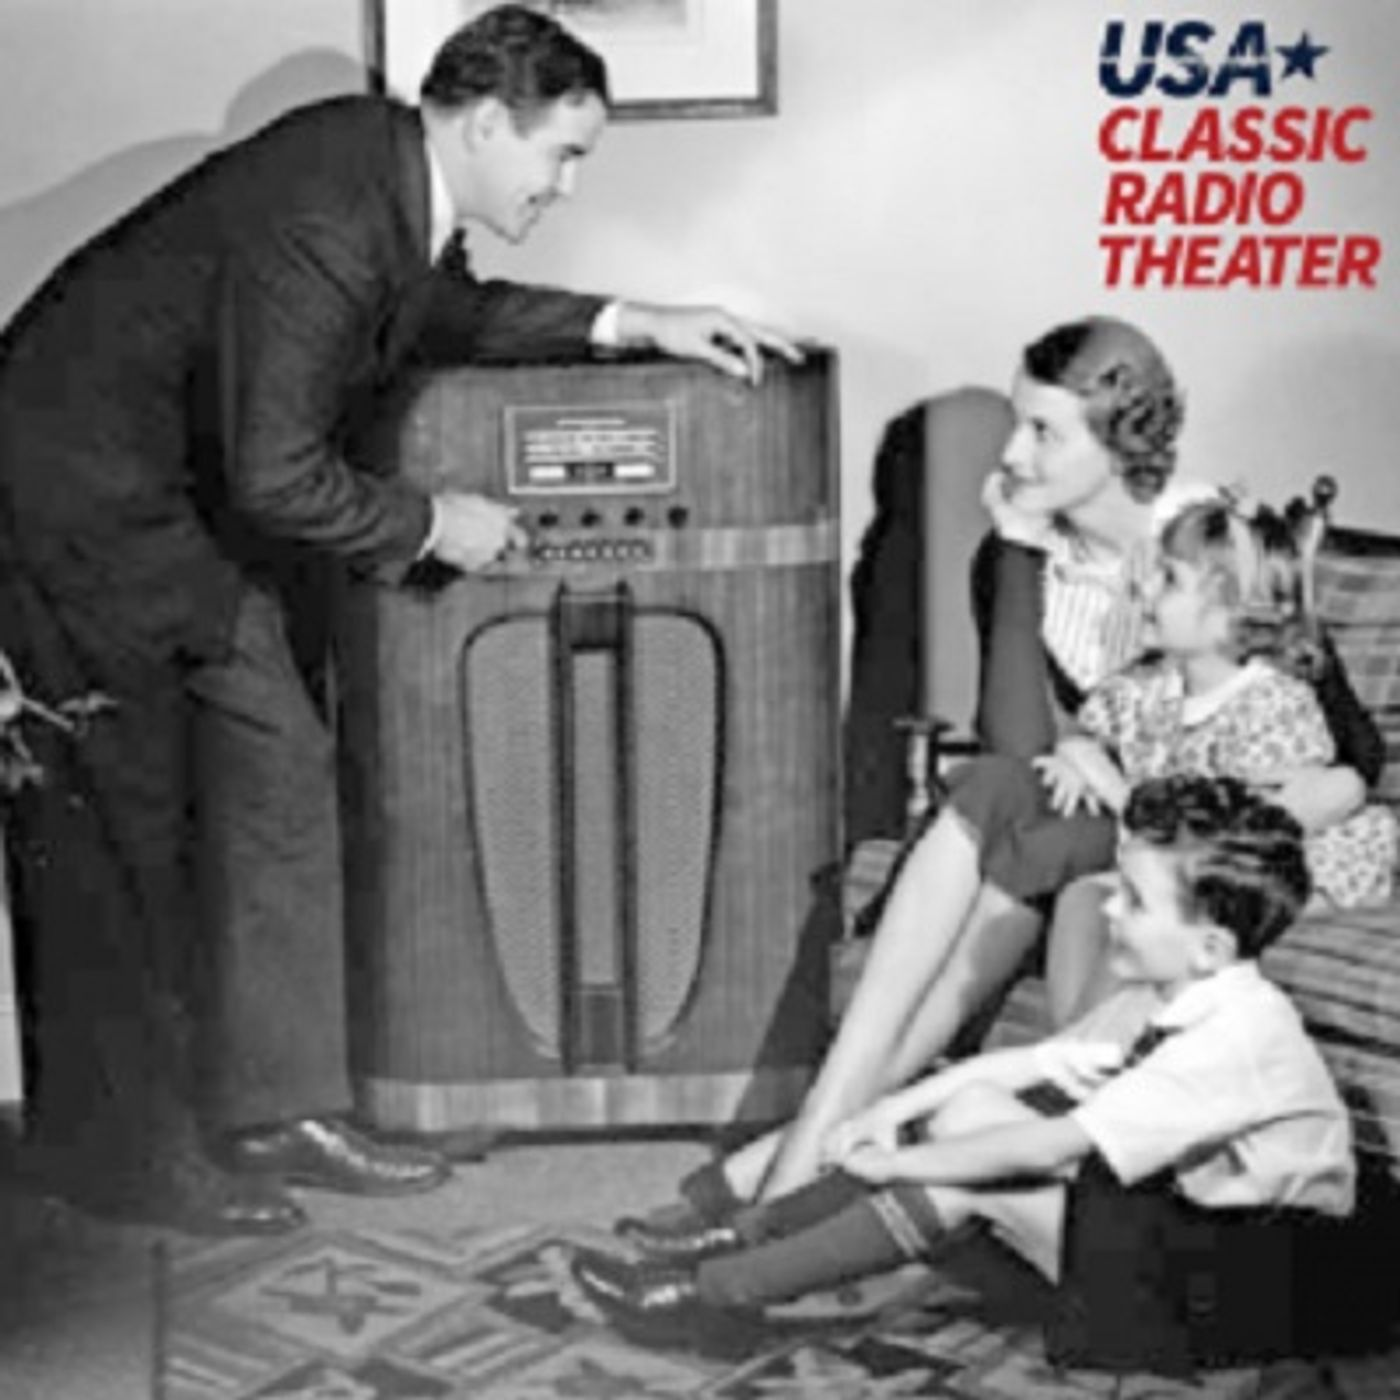 Heartland Newsfeed Radio Network: USA Classic Radio Theatre (August 21, 2019)